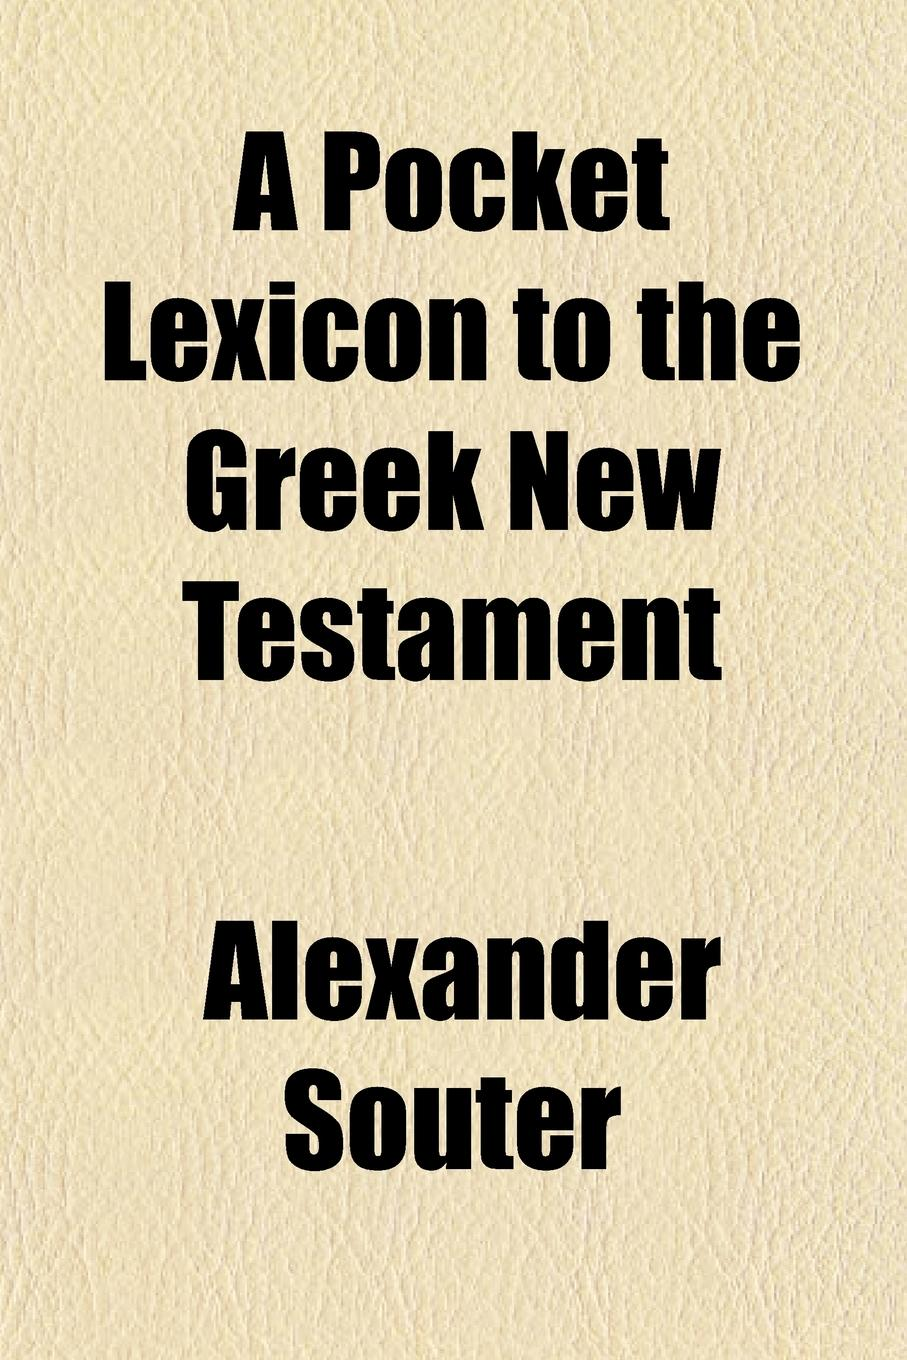 Alexander Souter A Pocket Lexicon to the Greek New Testament free shipping kayipht cm400ha1 24h can directly buy or contact the seller